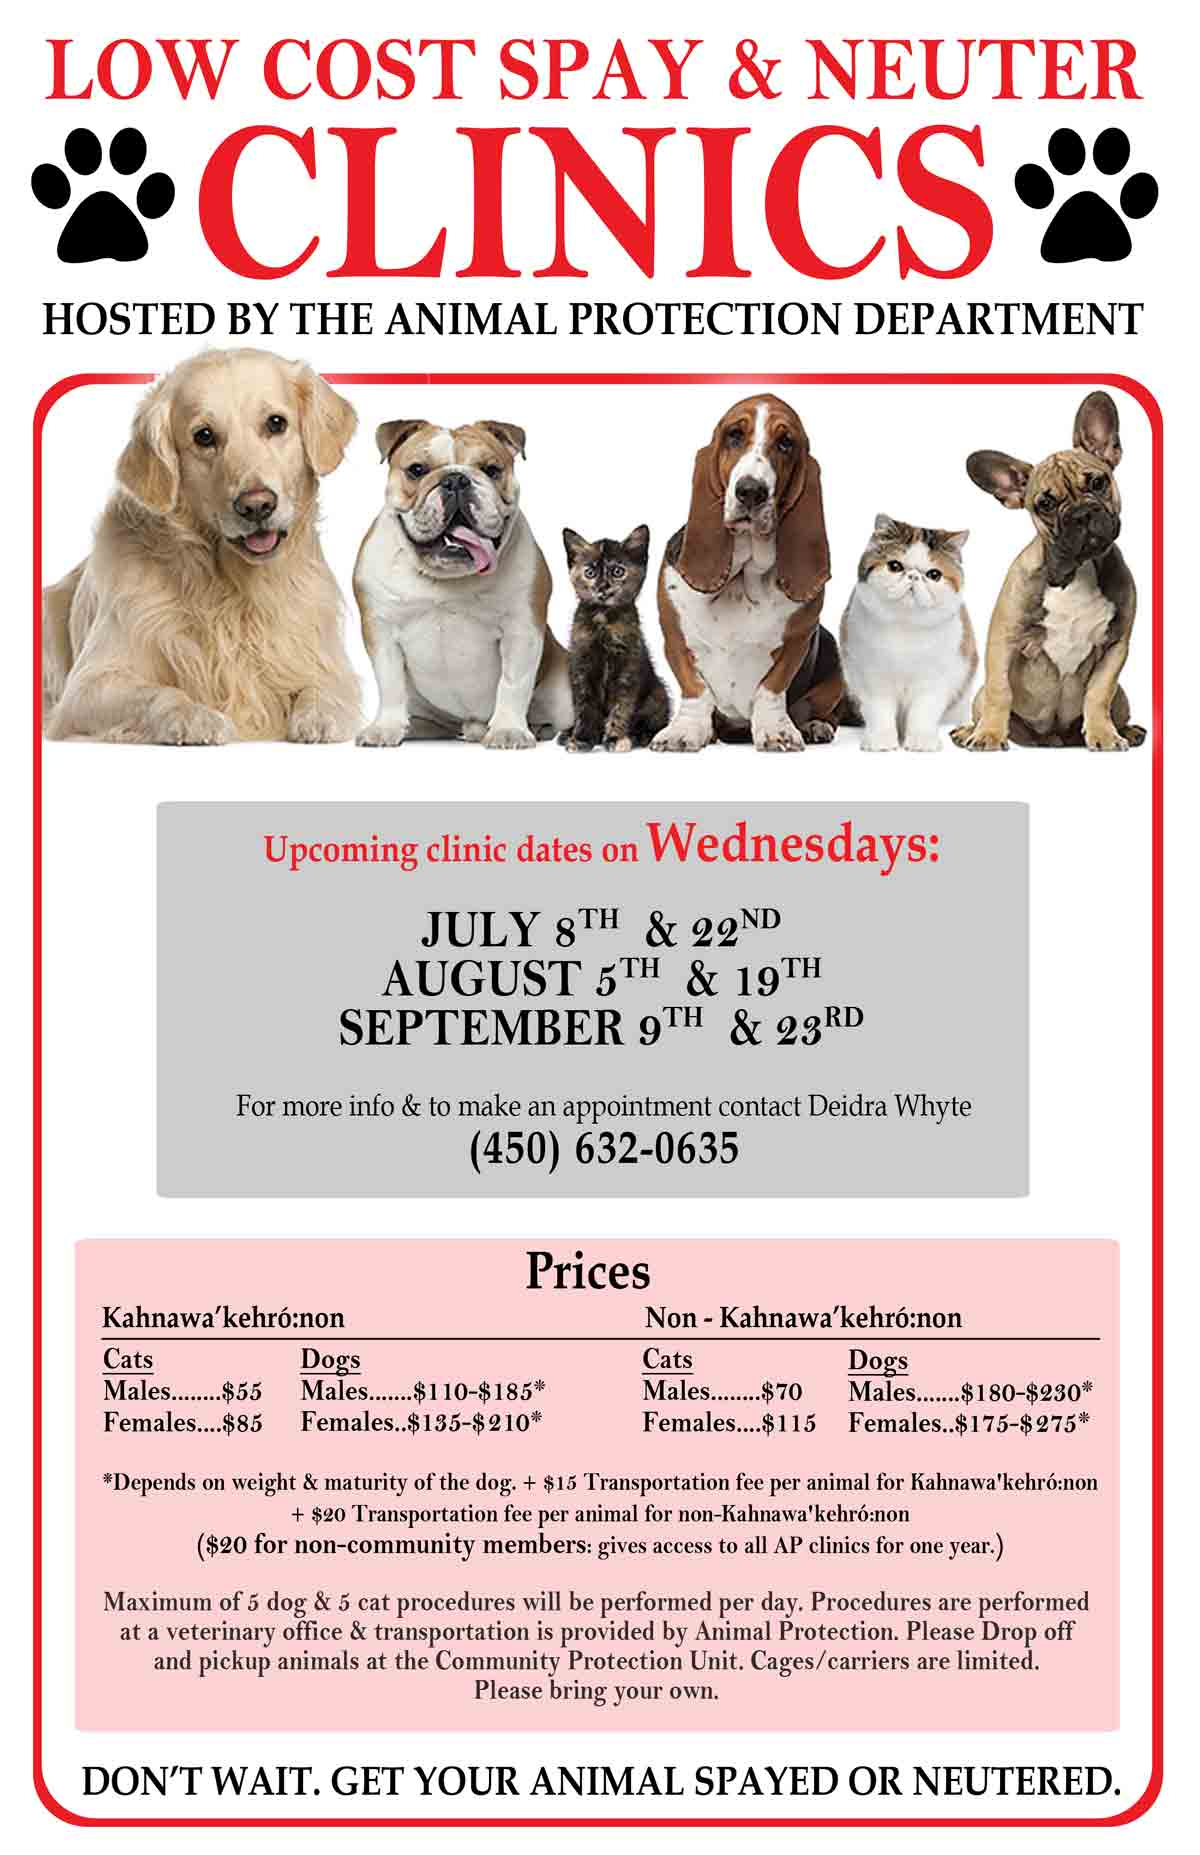 neutering and spaying effects of health Long-term health effects of neutering dogs: comparison of labrador retrievers with golden retrievers benjamin l hart1, lynette a.